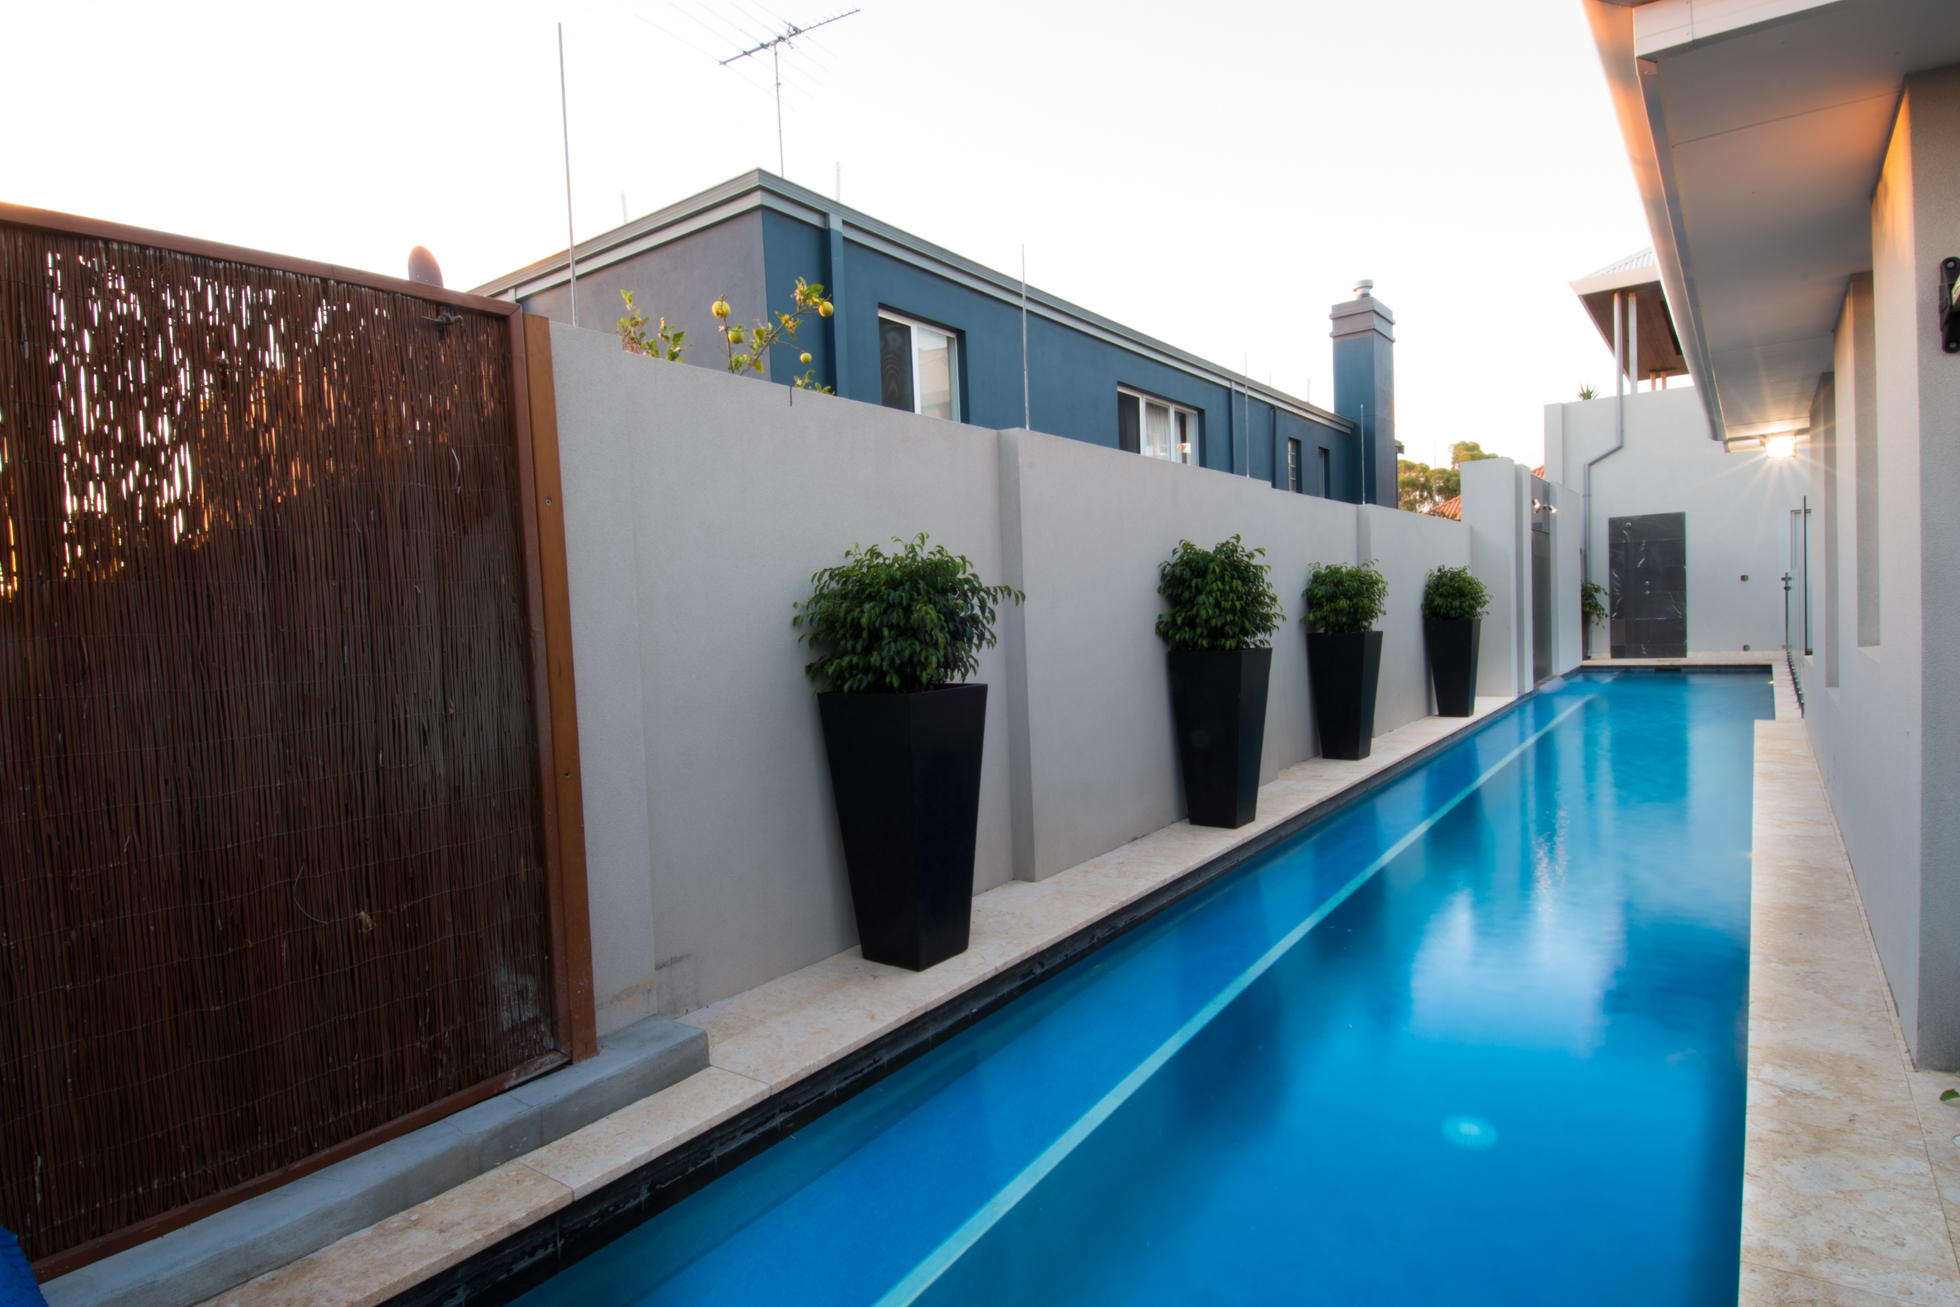 41 pools by design perth wa commercial photography 150303 for Pool design perth